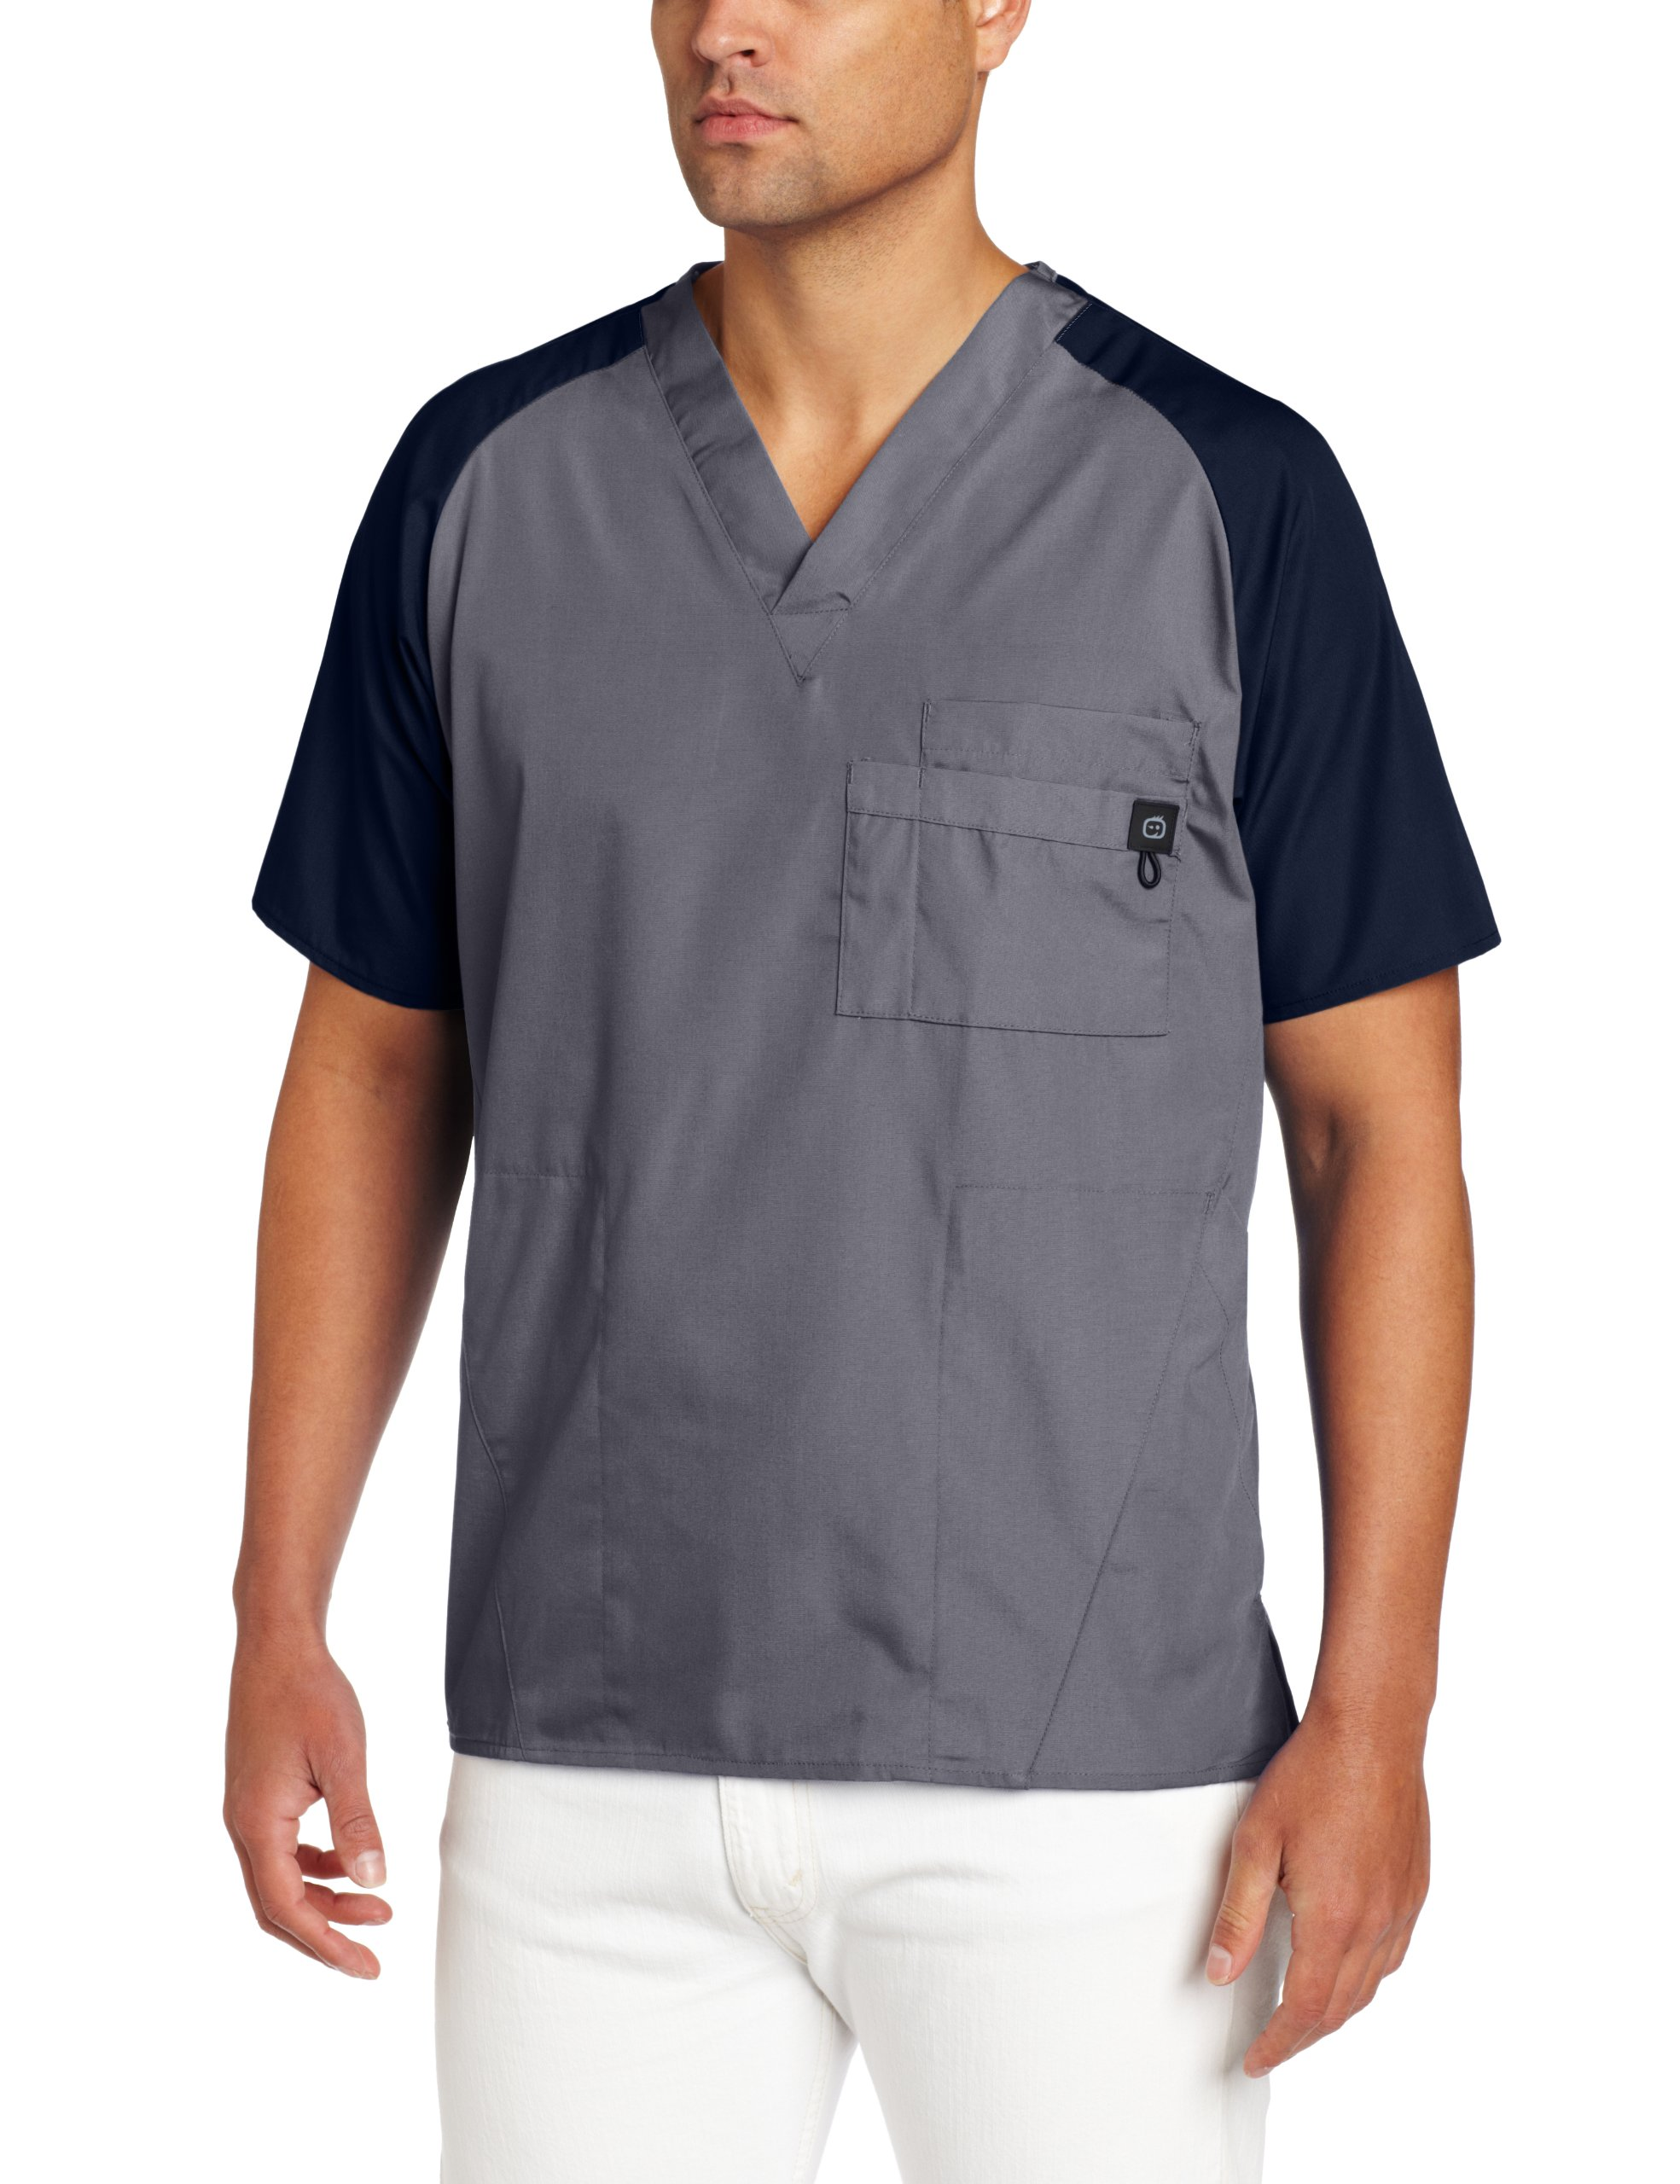 WonderWink Men's Raglan Color Block 5 Pocket Scrub Top, Gray, Large